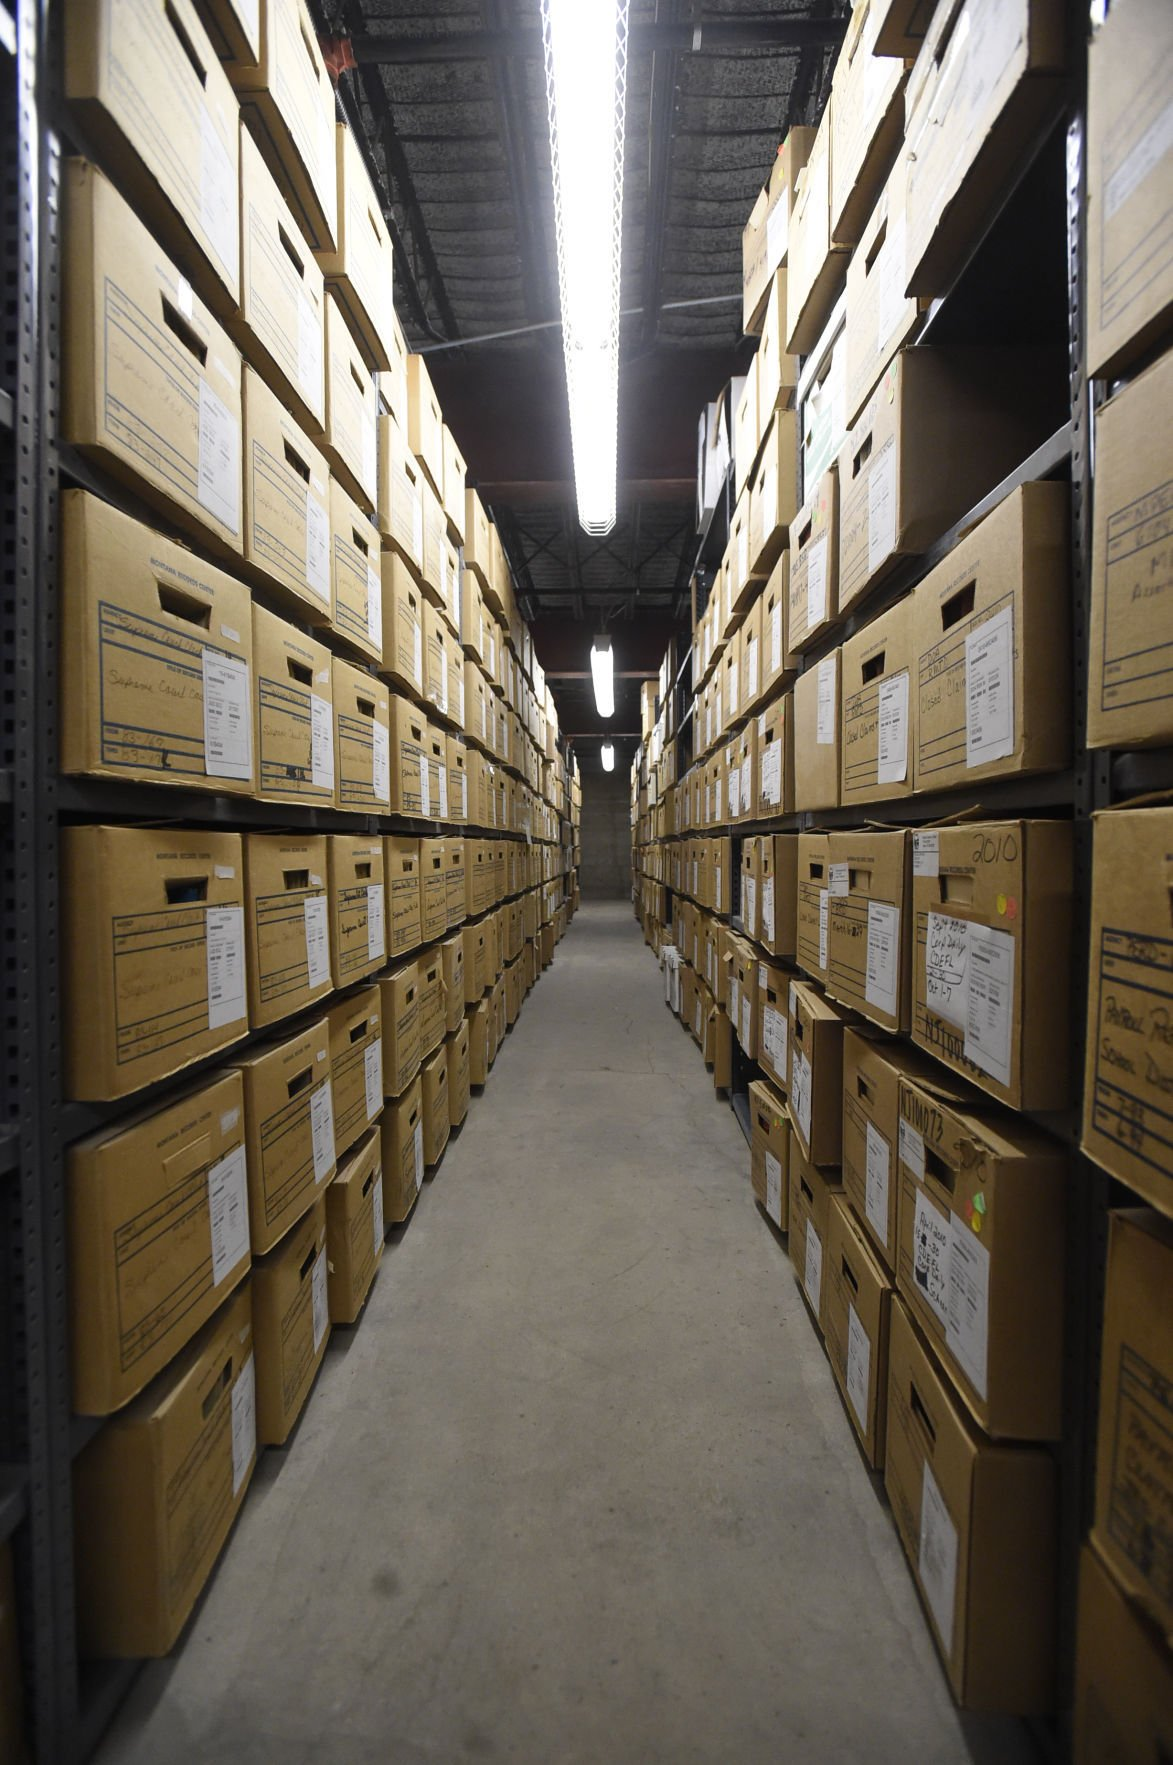 Shelves of boxed state records